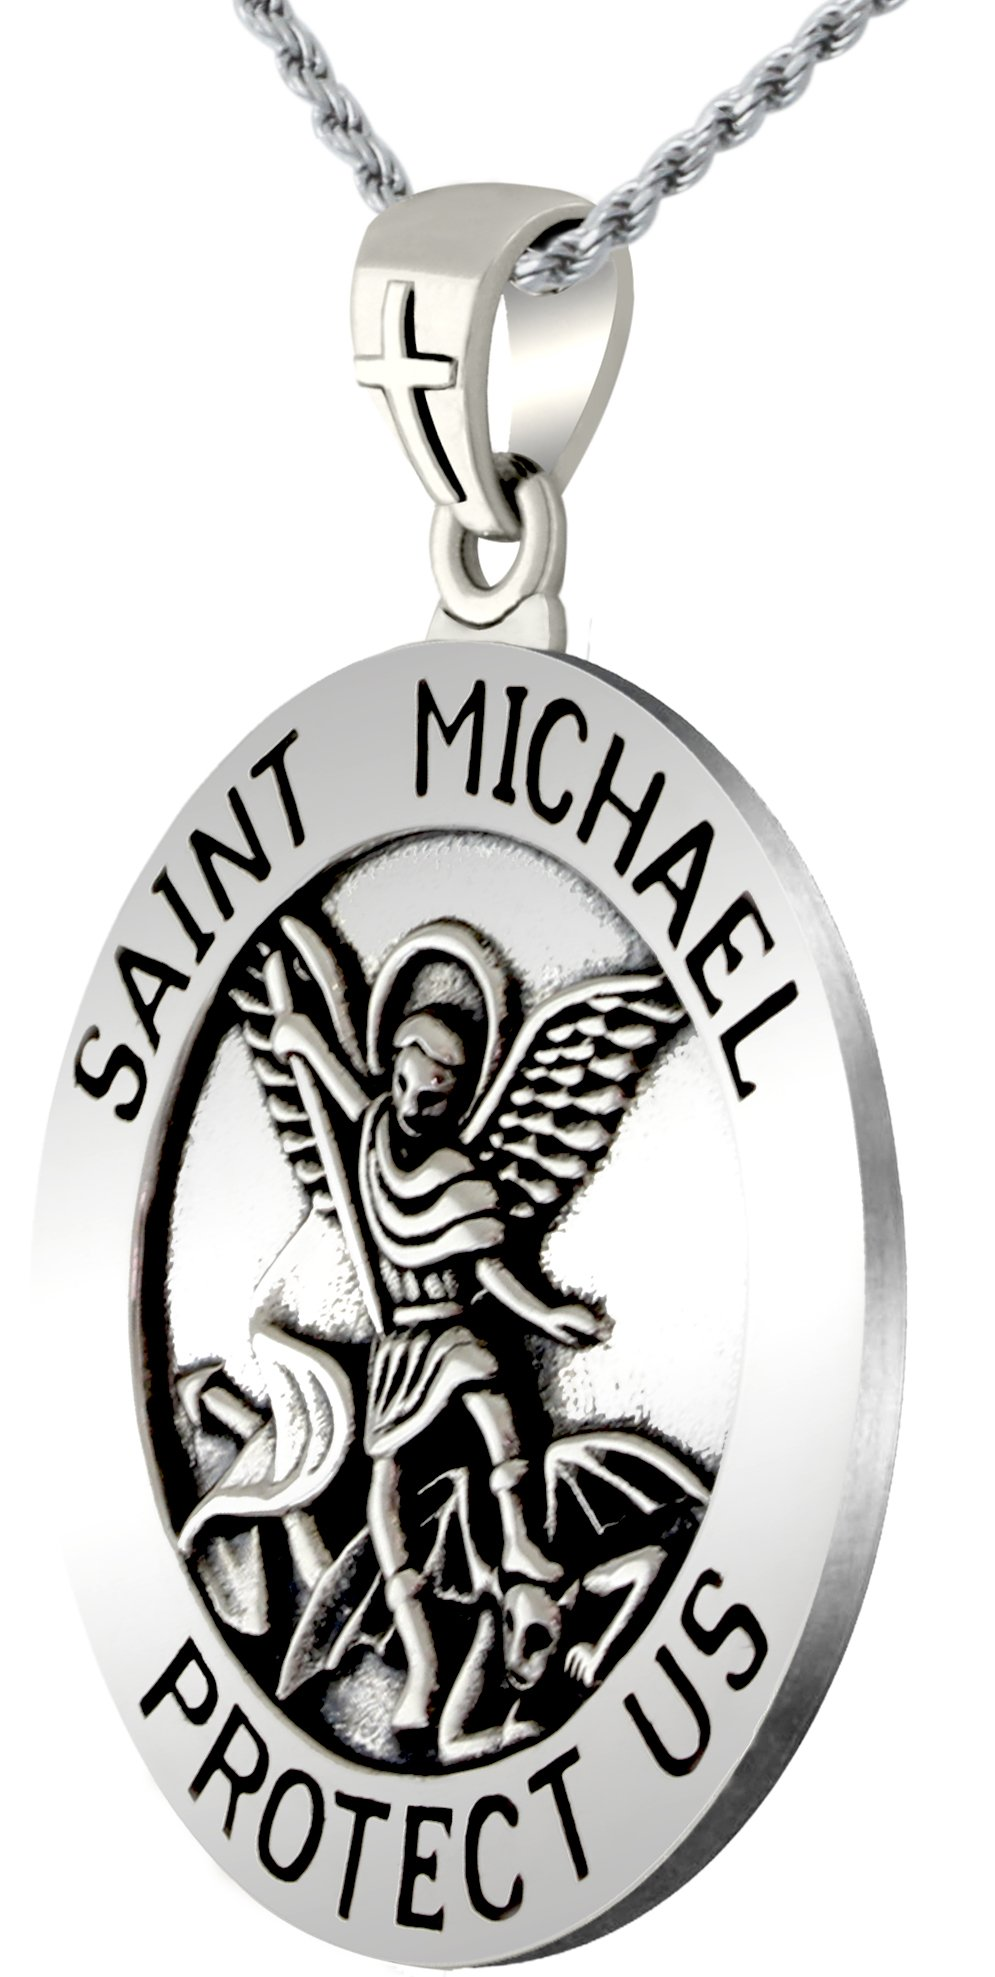 US Jewels And Gems 1.25in 0.925 Sterling Silver St Saint Michael Medal Round Pendant Necklace